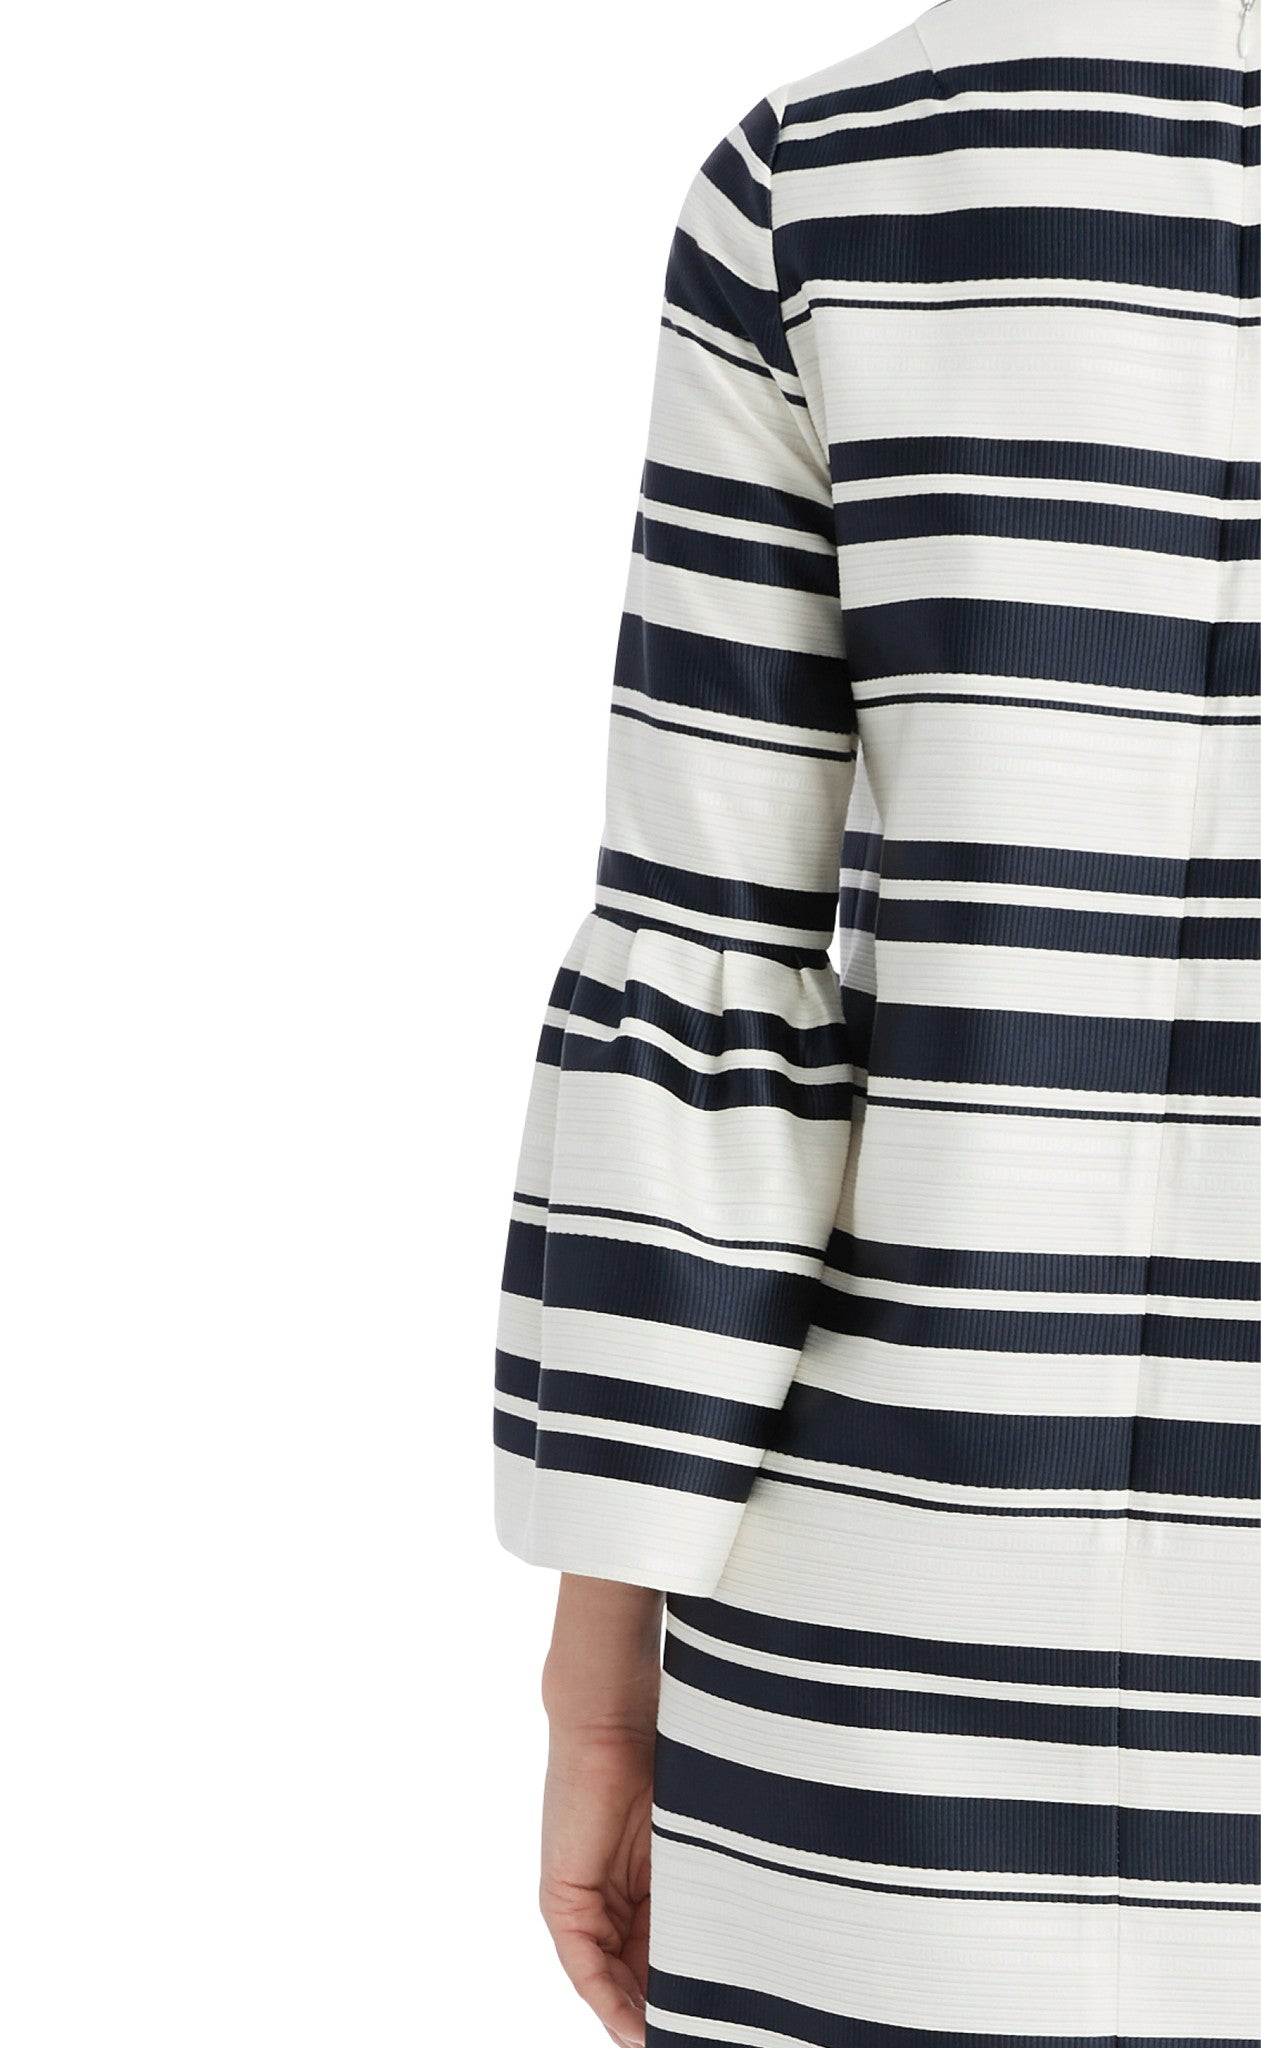 editions de robes SS17 collection cocktail mariette navy and ecru stripes dress